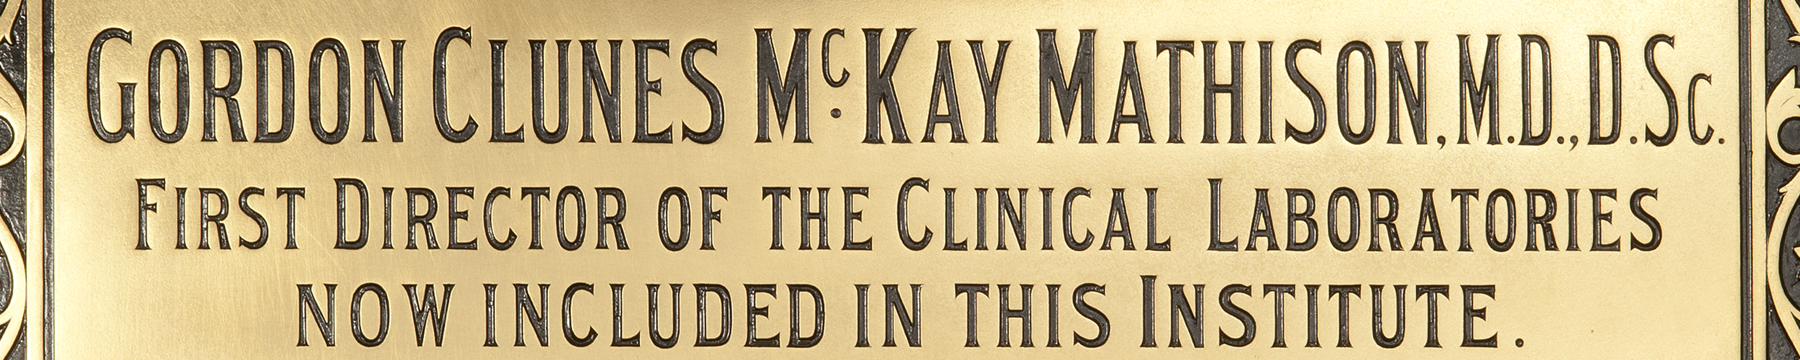 Plaque commemorating Dr Gordon Clunes McKay Mathison